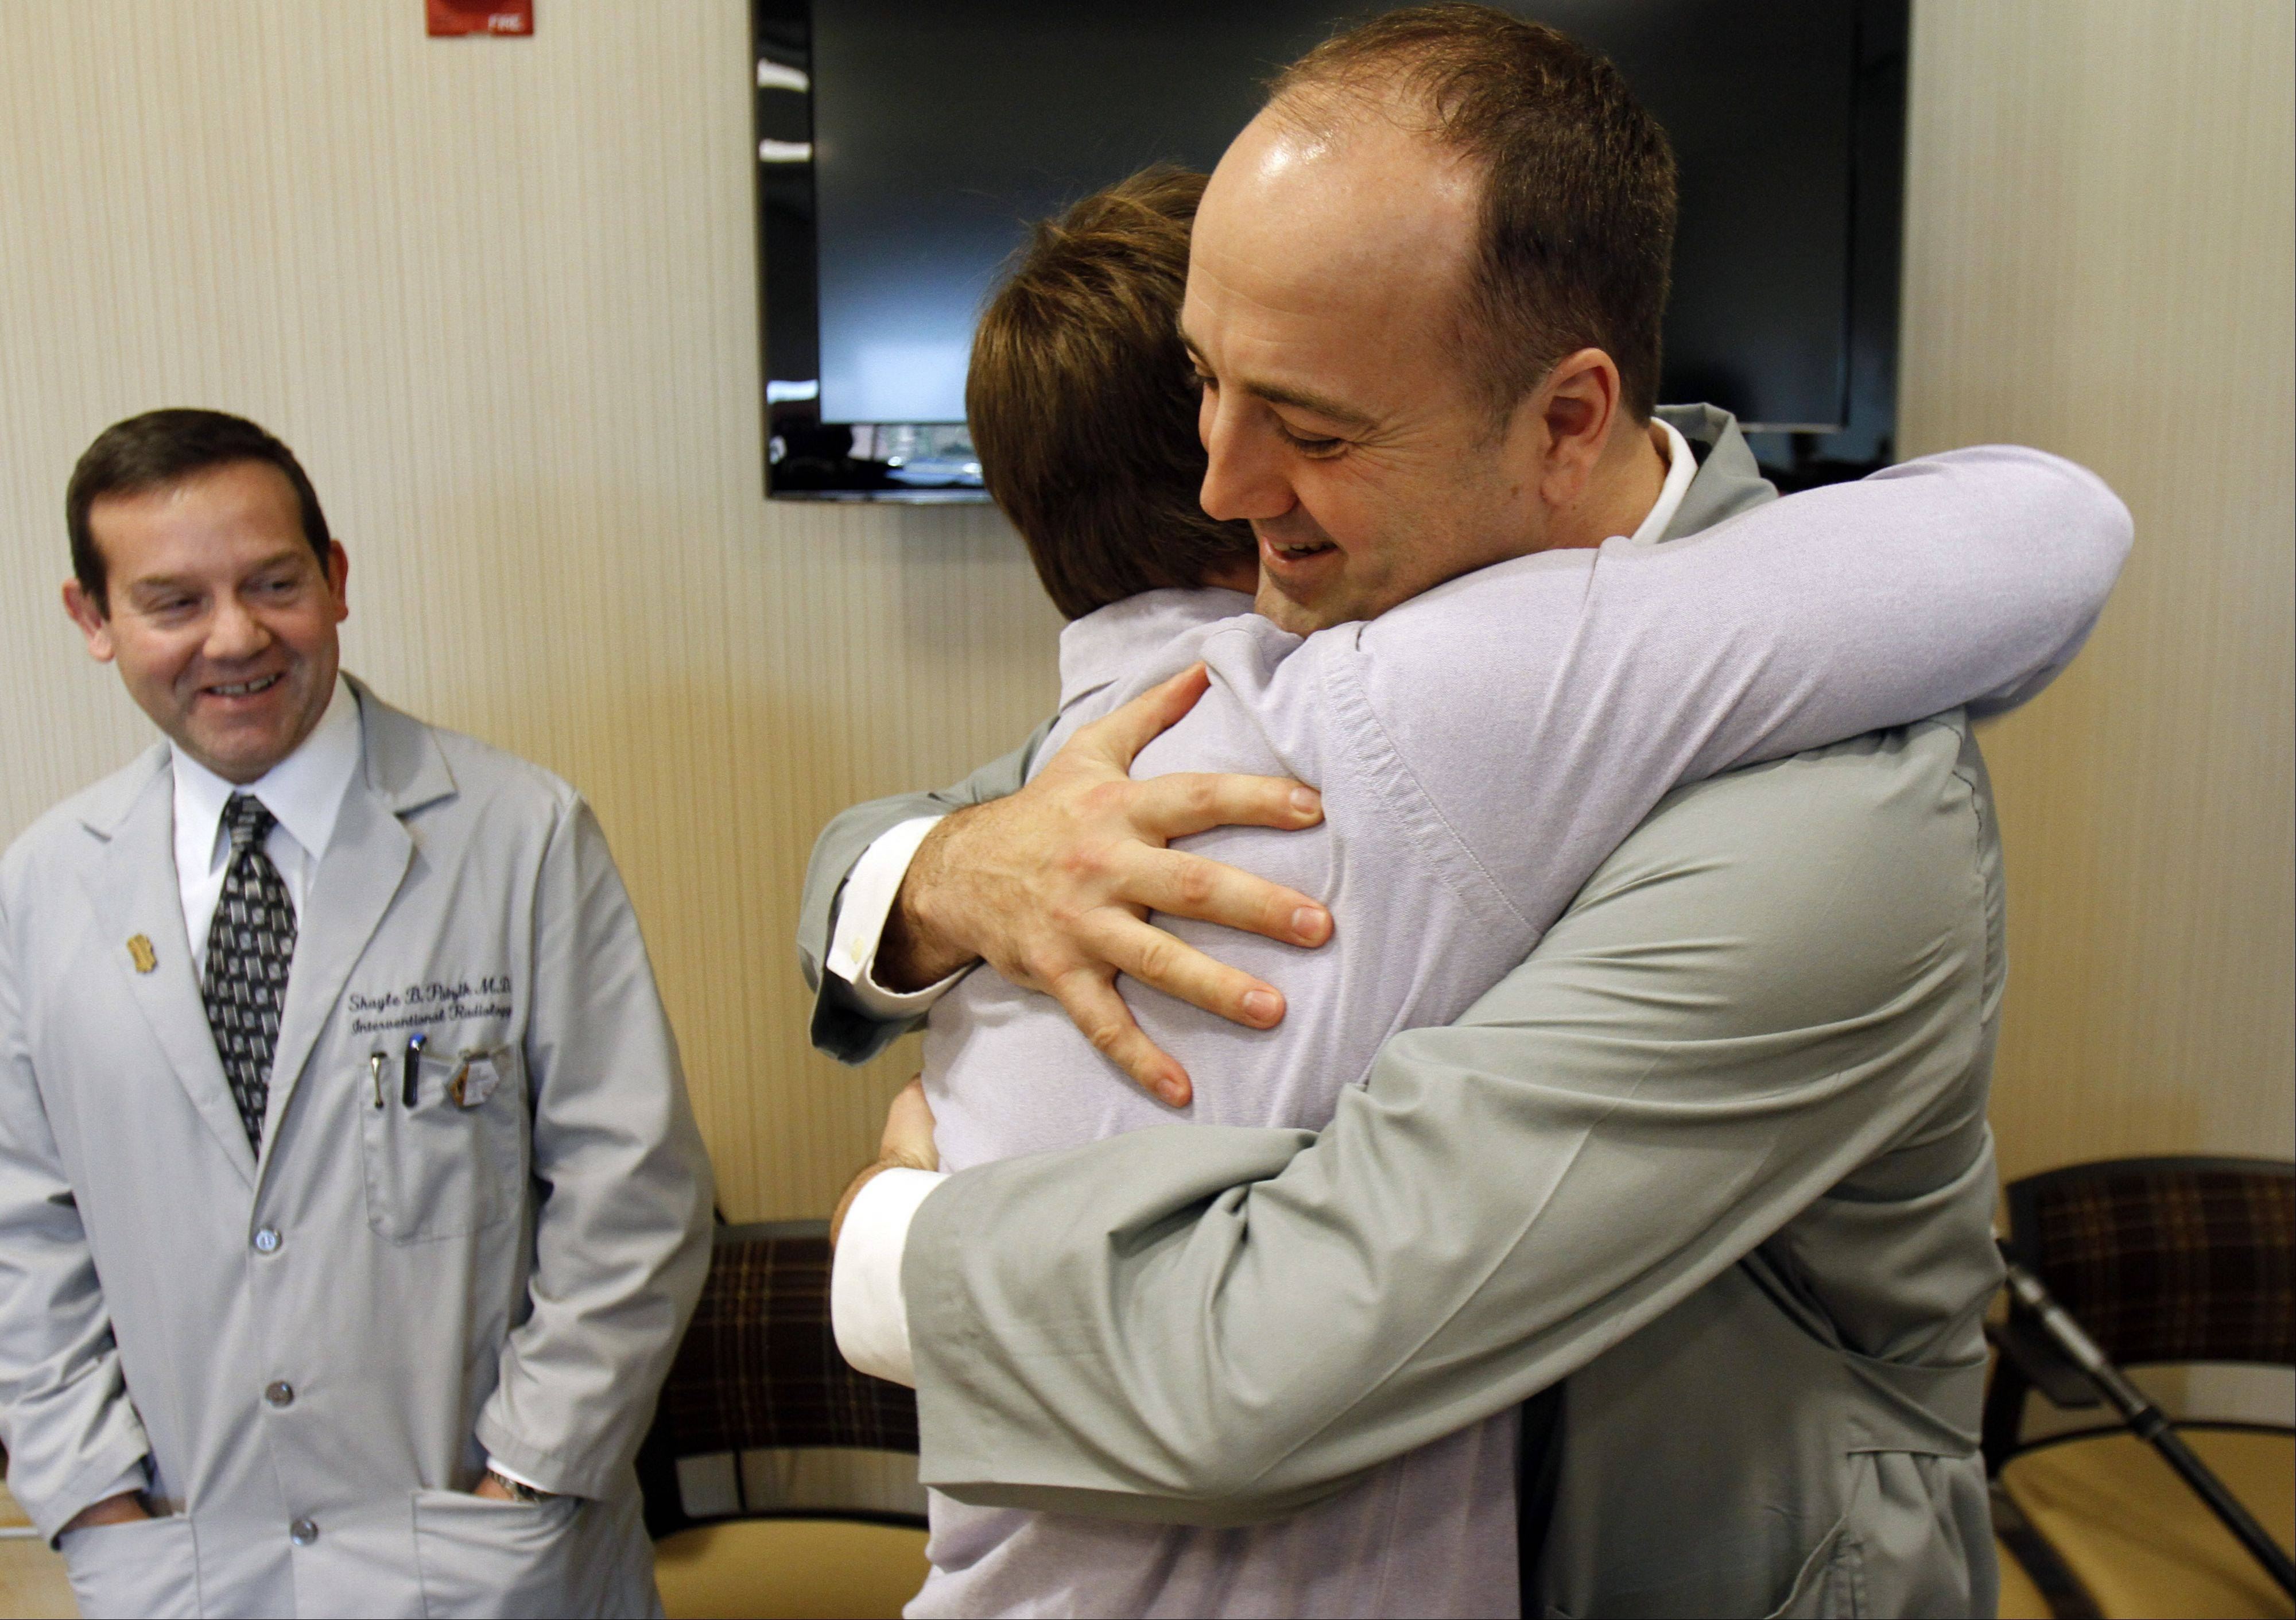 Forrest Ericksen, 18 of Lake Villa, hugs trauma surgeon Dr. William Watson at Advocate Condell Medical Center in Libertyville Wednesday. Watson and other surgeons at Condell's level 1 trauma unit saved Ericksen's life after a snowmobile accident almost two years ago.